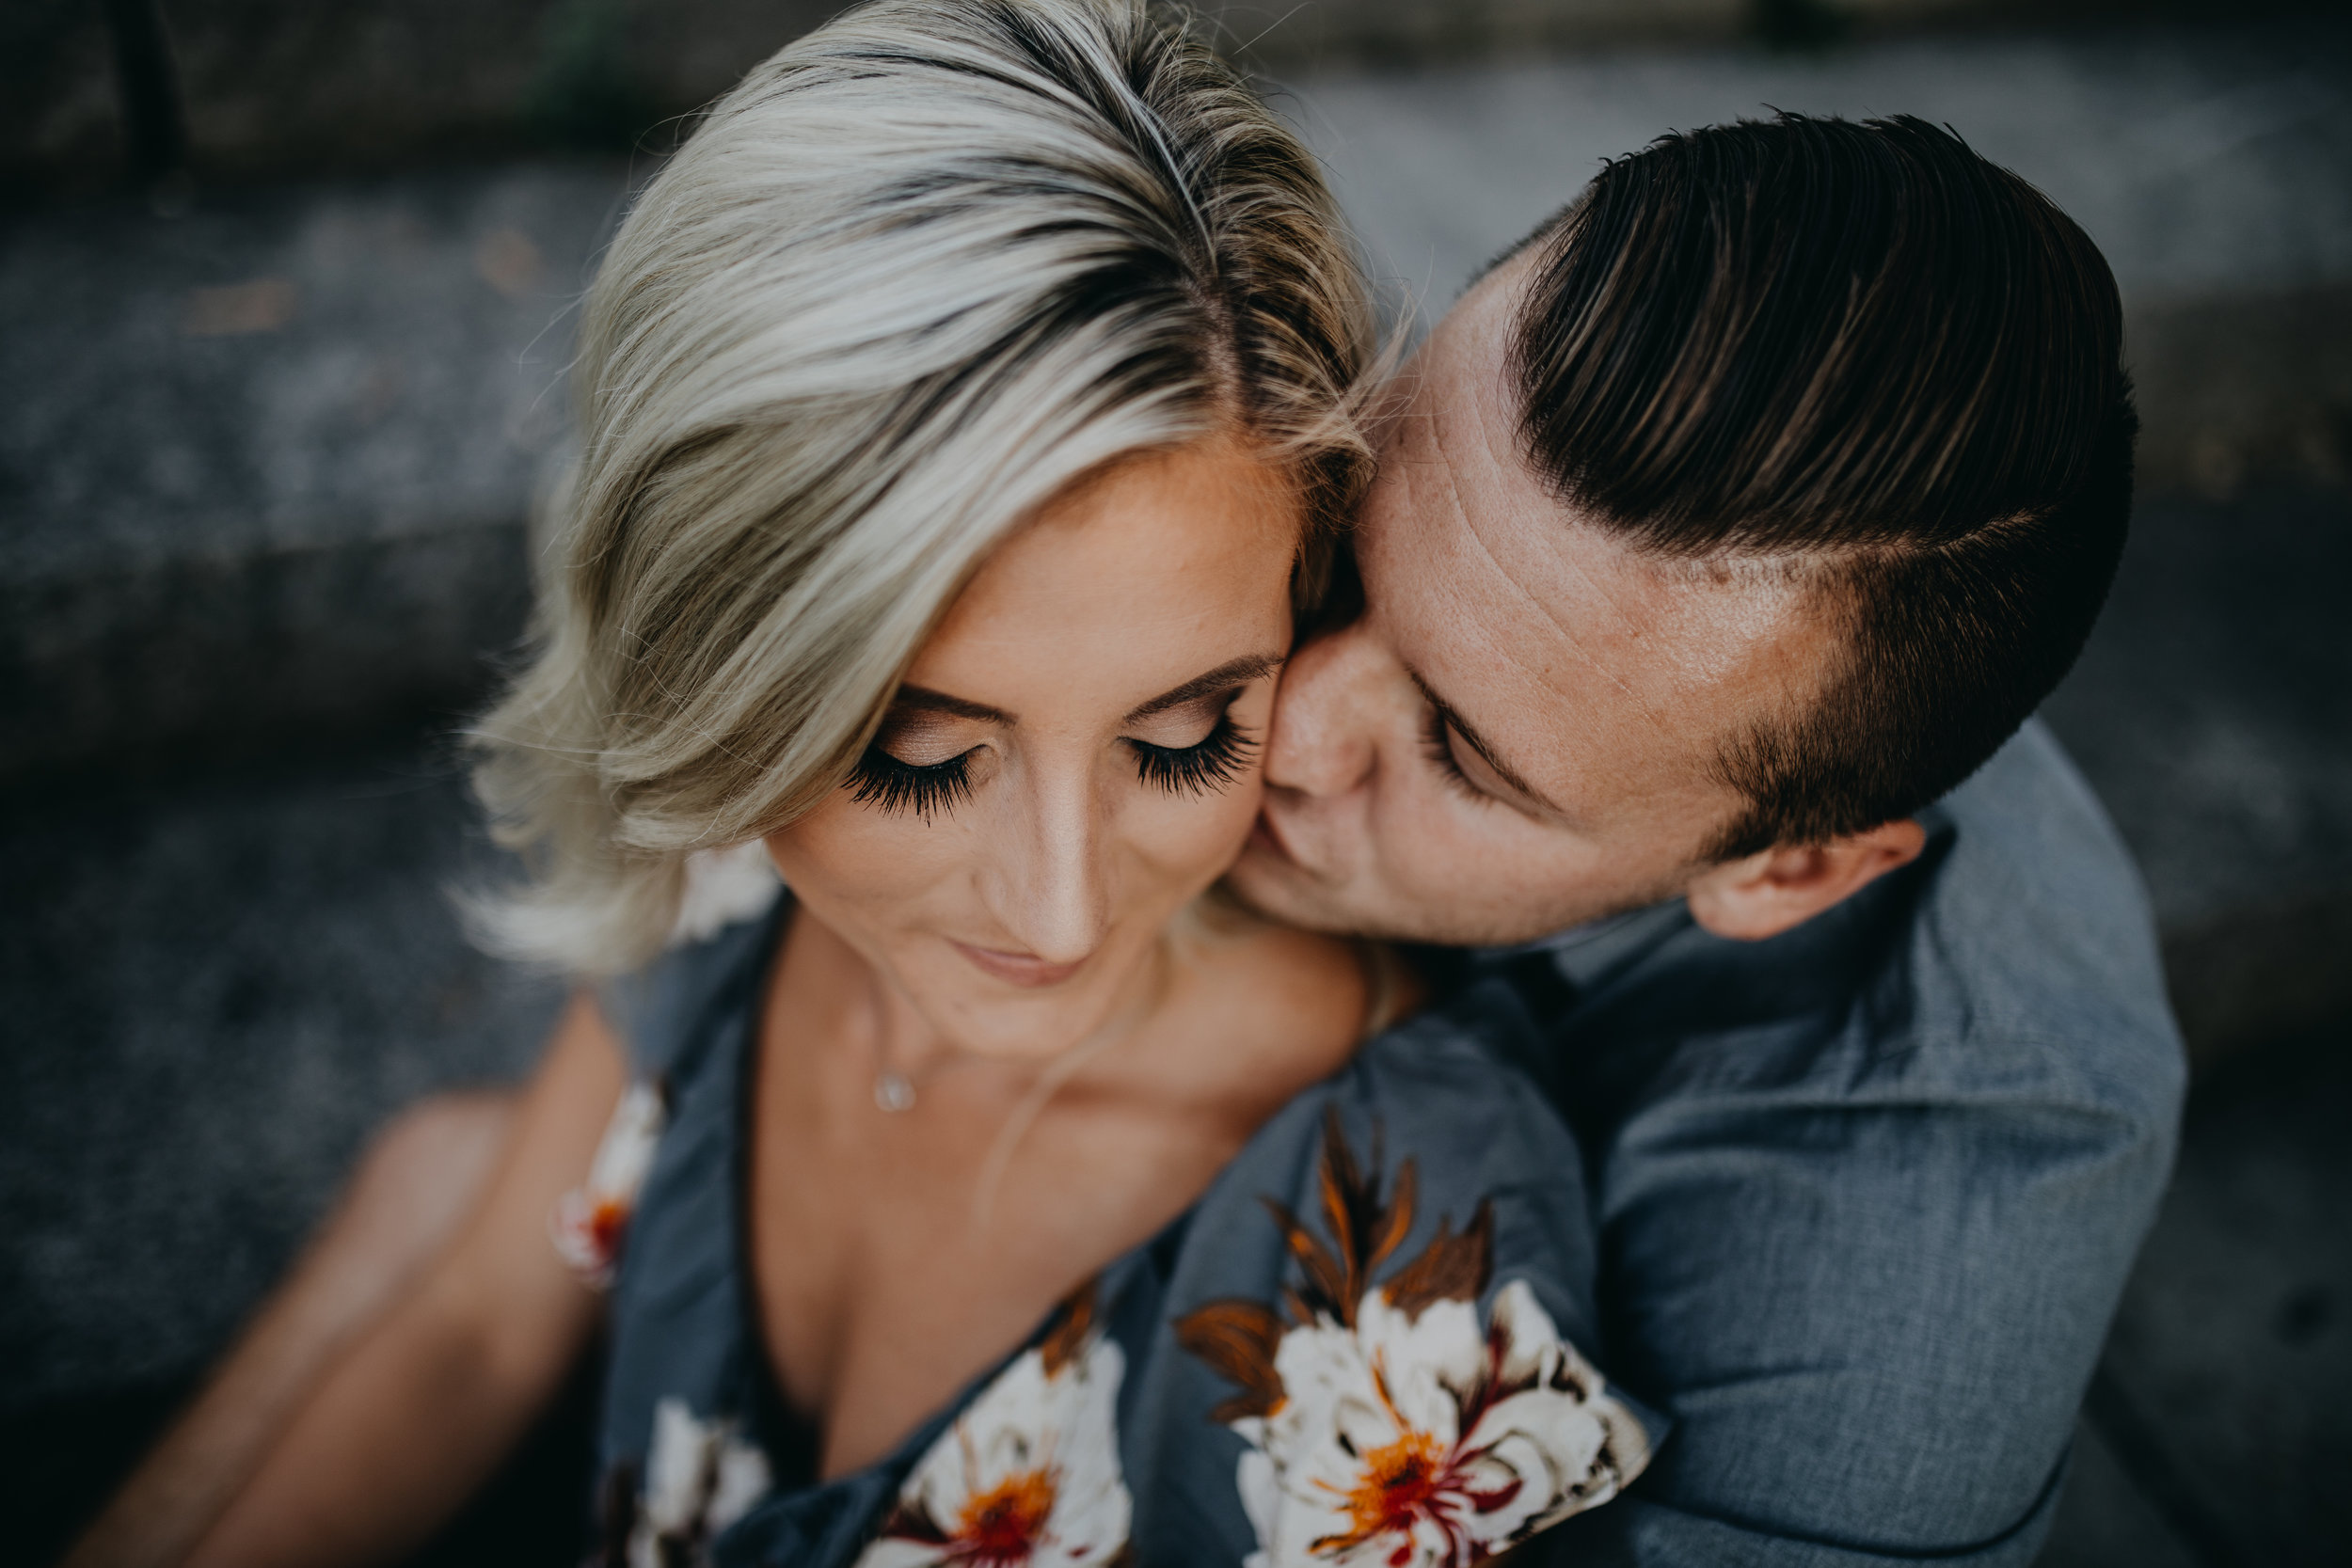 Couples - $285 for 60 min$345 for 90 minIncludes a link to an online folder with the edited images and copyright release for printing. There is no set number of photos but typically there are 70-95 photos.Click to book today!